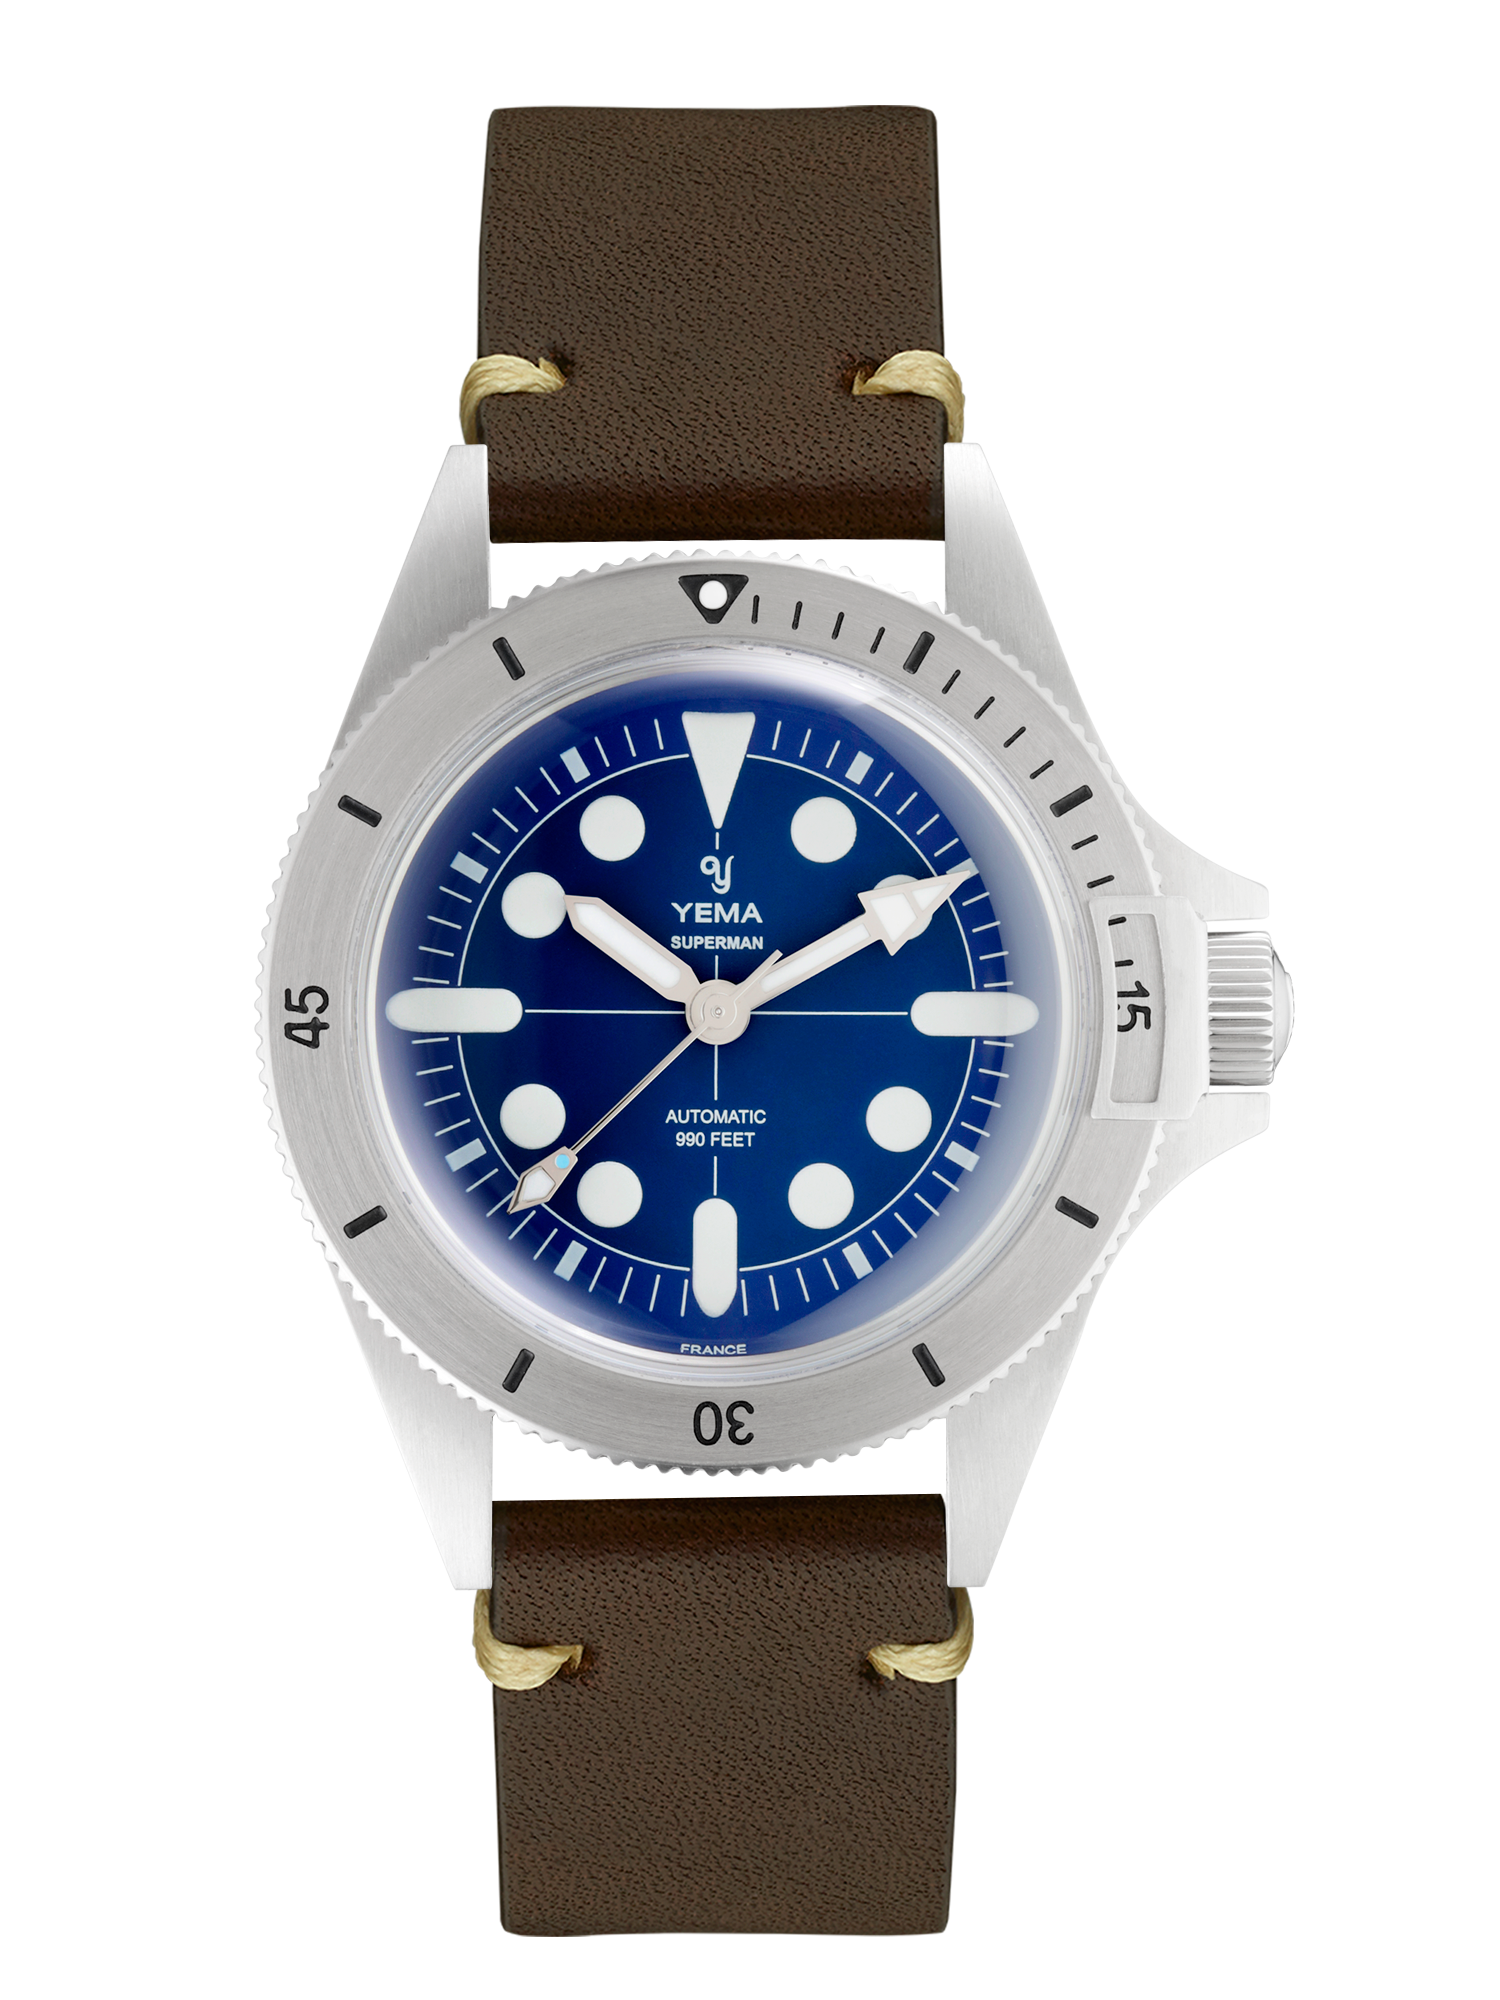 YEMA SUPERMAN MAXI DIAL BLUE, brown leather strap